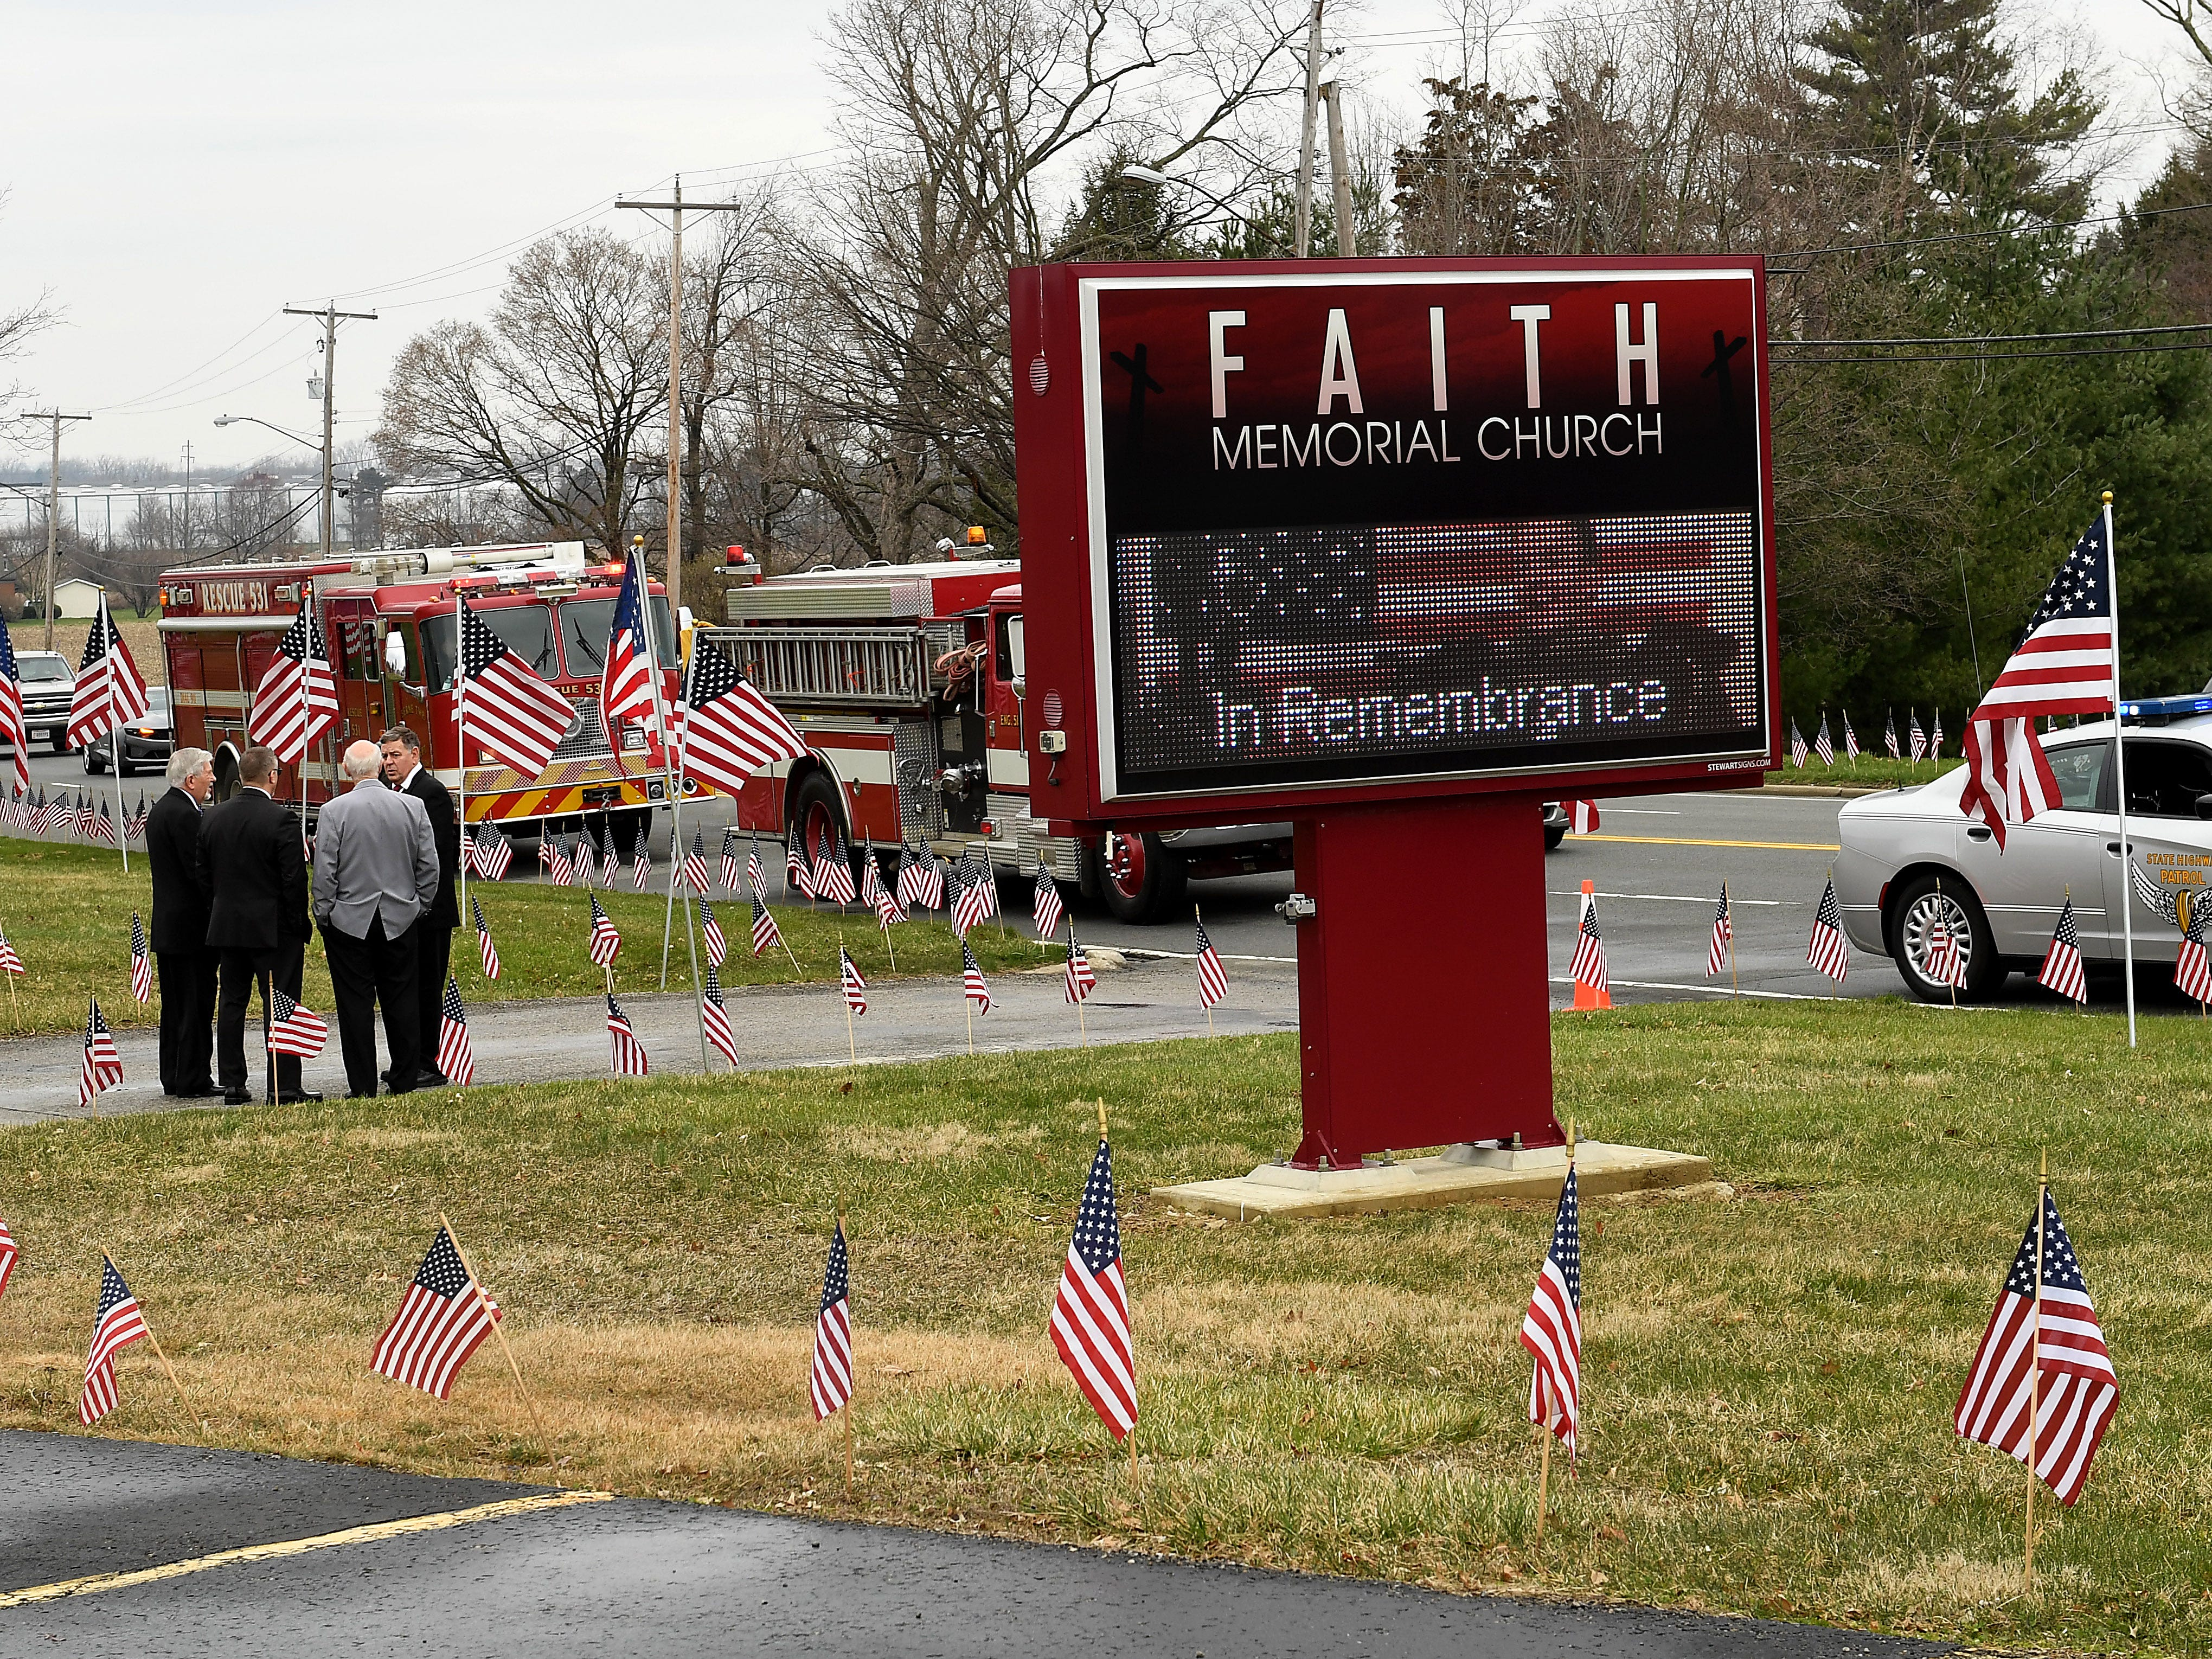 Funeral services were held for Sgt. Joseph Collette's on Friday, April 5, 2019 at Faith Memorial Church in Lancaster. Collette was killed in action in Afghanistan last month.